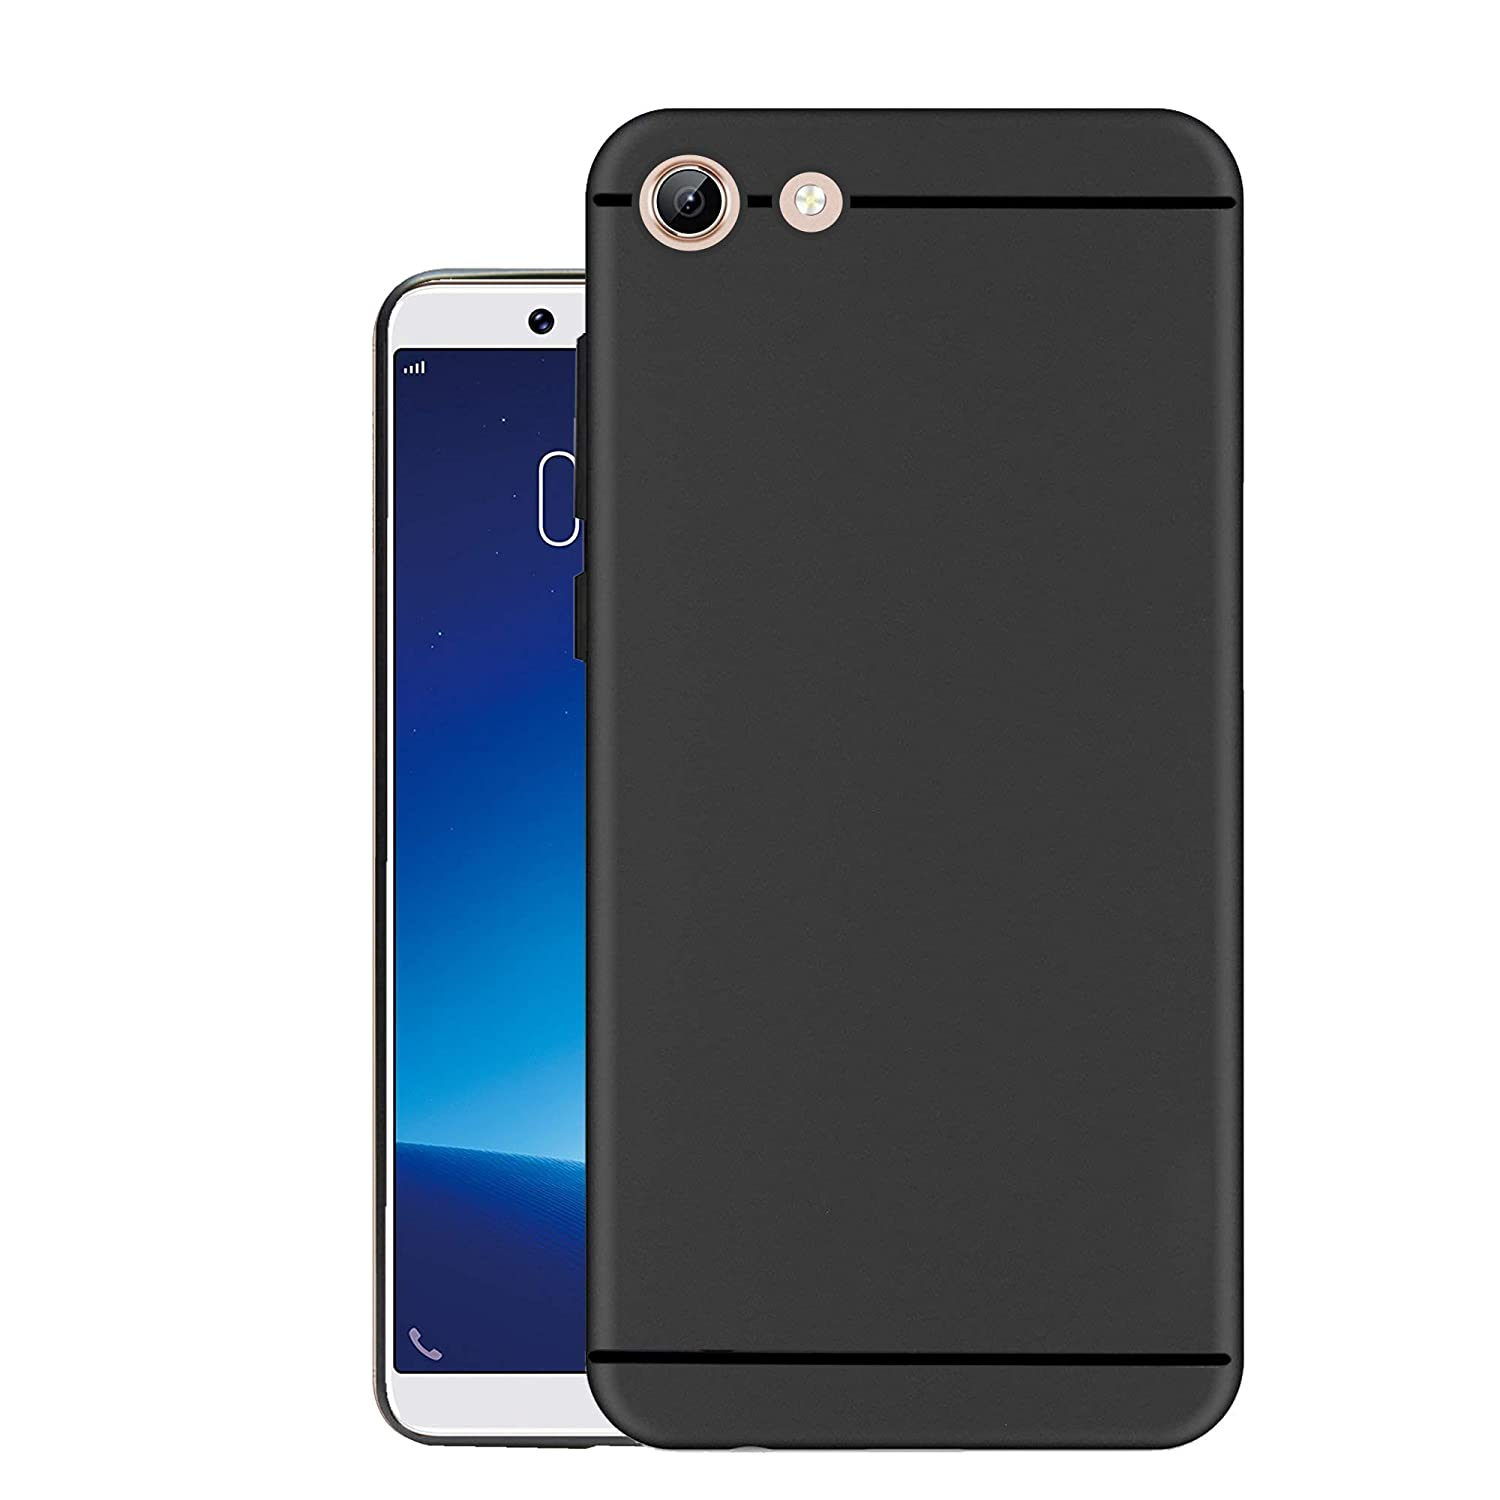 official photos d4d56 f9594 Hello Zone Exclusive Matte Finish Soft Back Case Cover for Vivo Y71 - Black